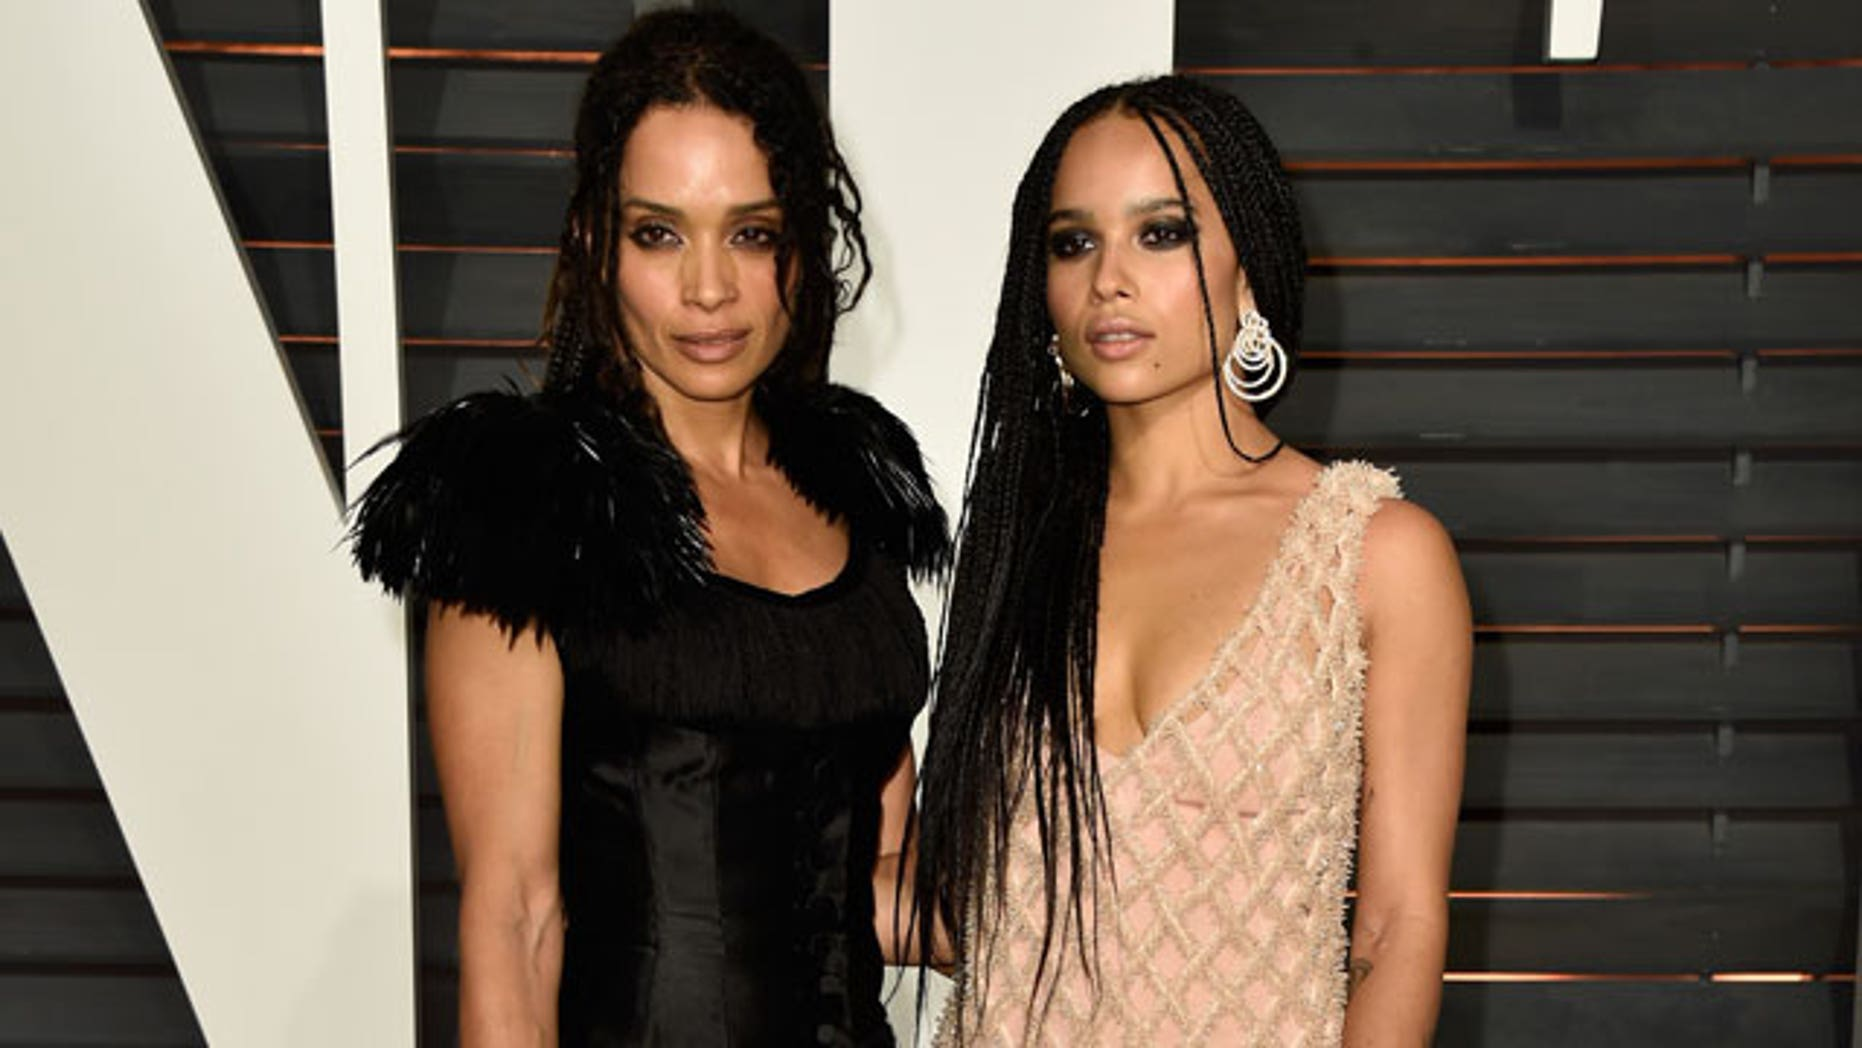 Zoe Kravitz Mom Lisa Bonet Is Disgusted By Bill Cosby